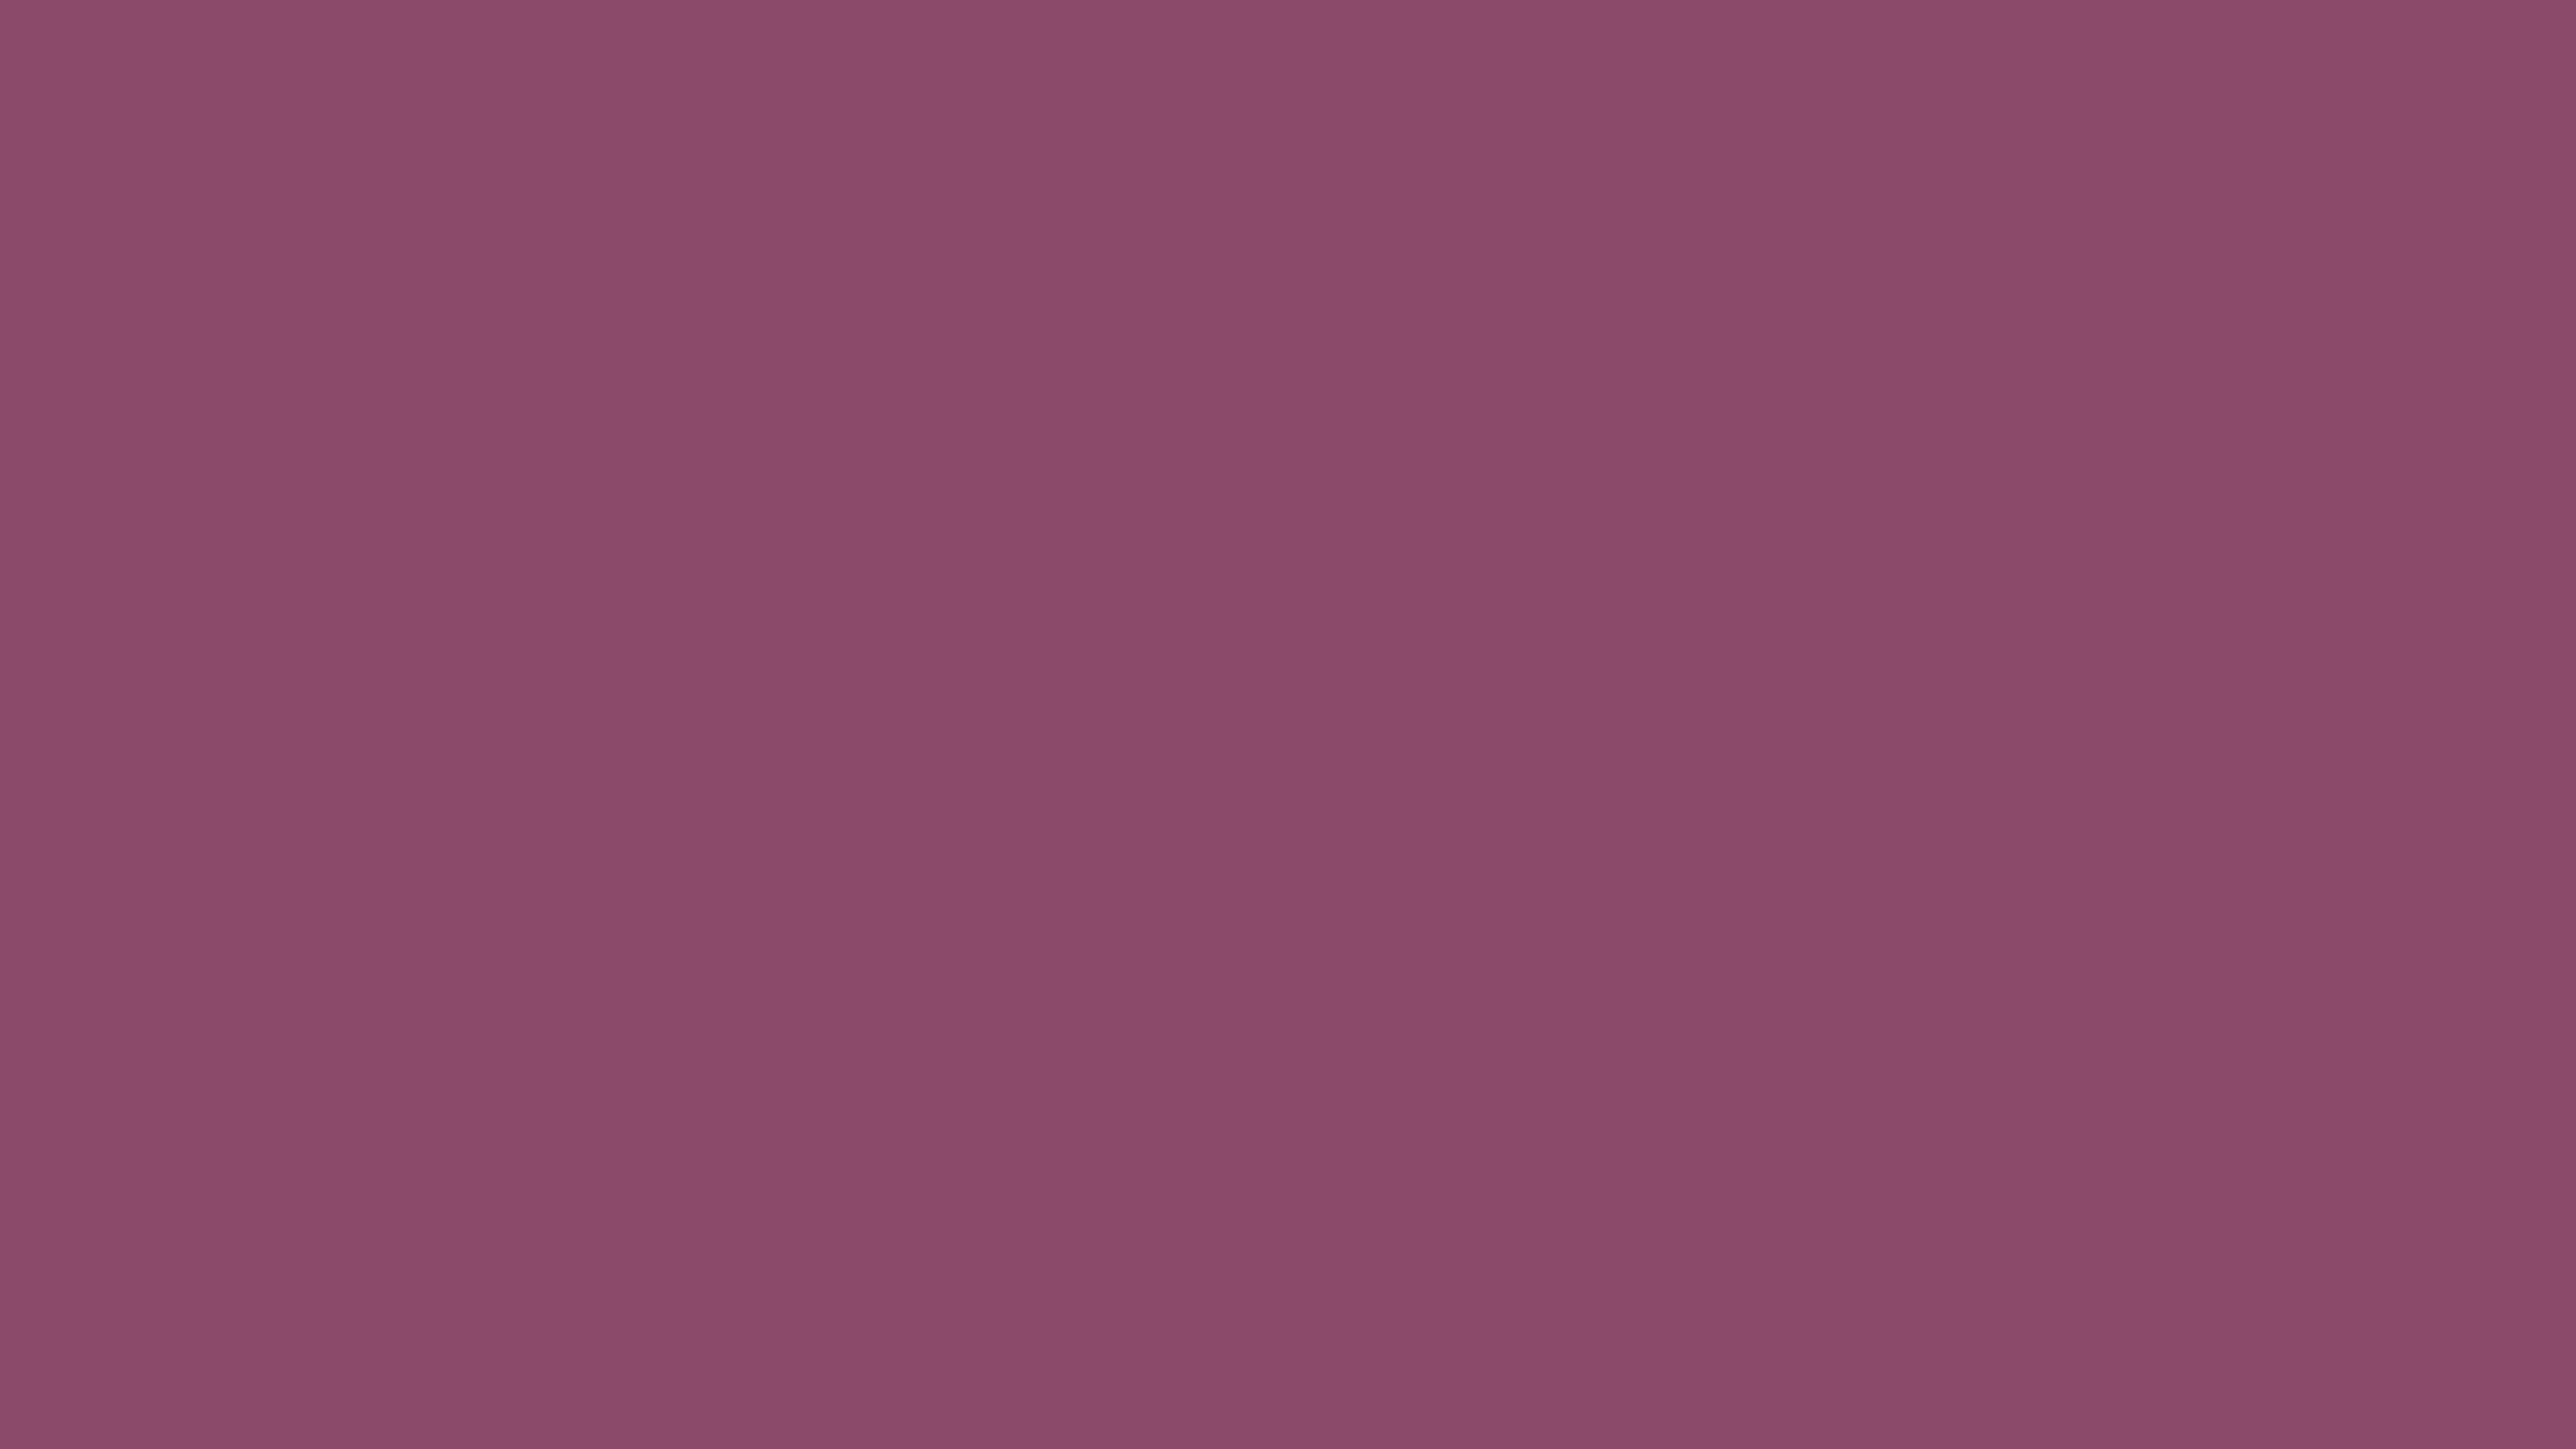 4096x2304 Twilight Lavender Solid Color Background